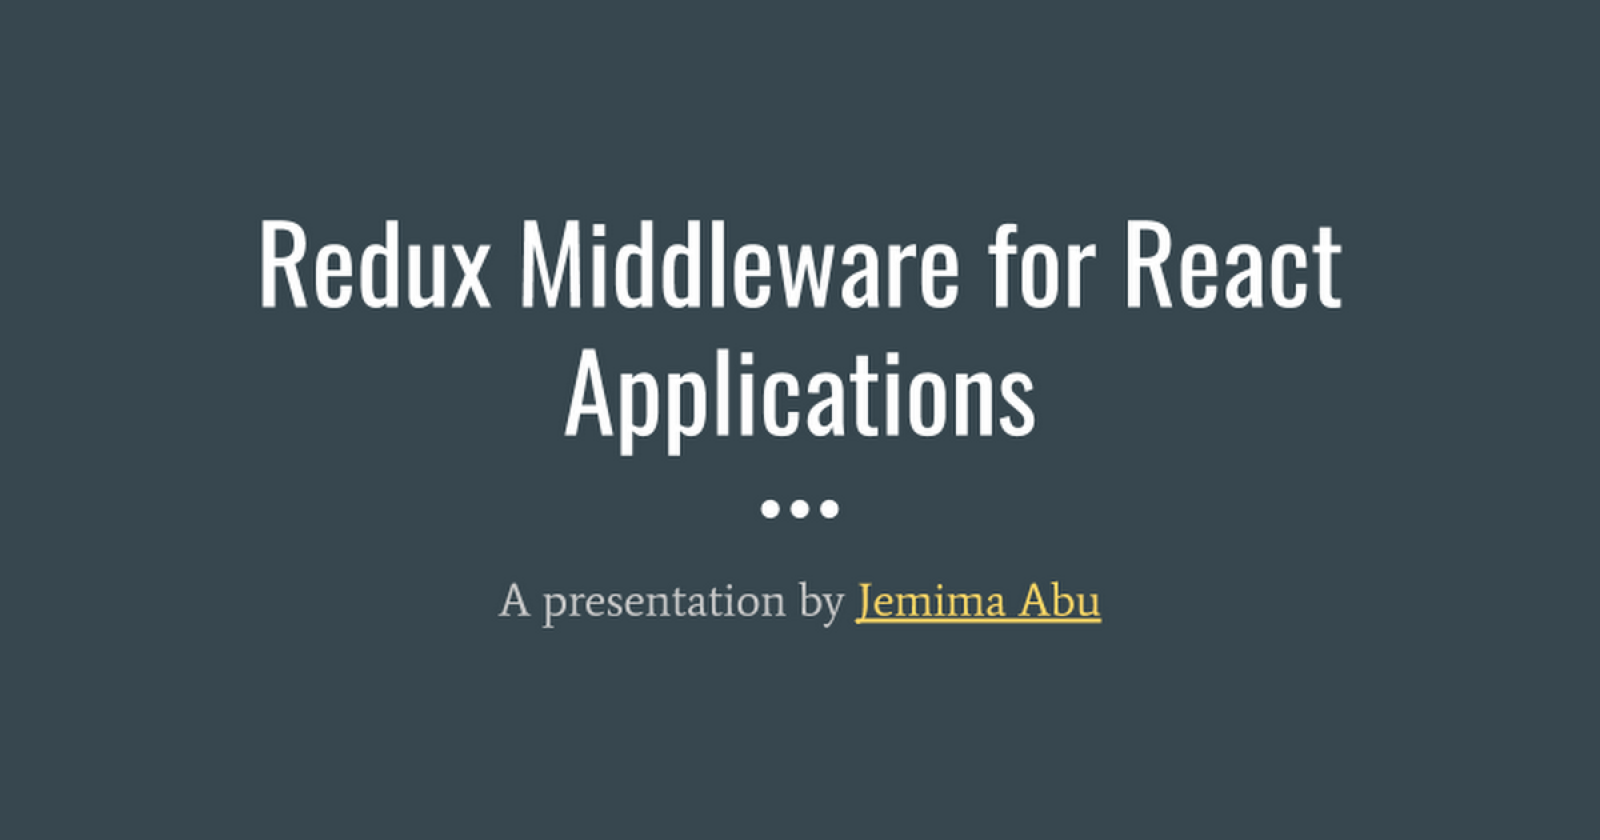 Redux Middleware for React Applications